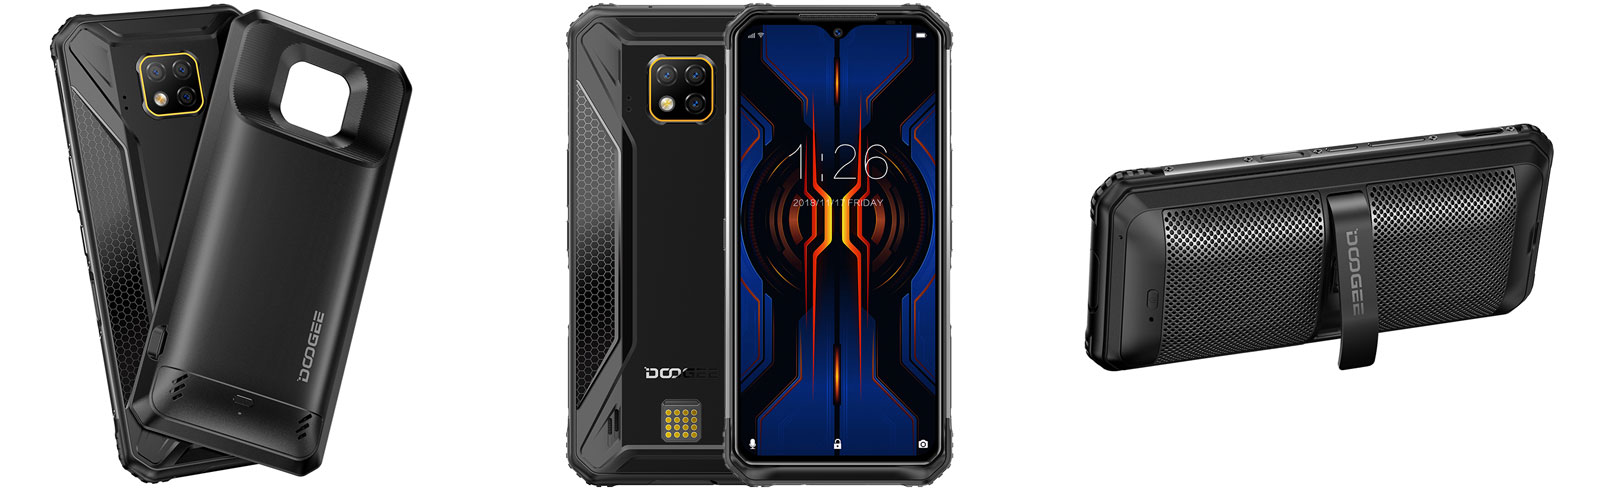 Our full Doogee S95 Pro review is up